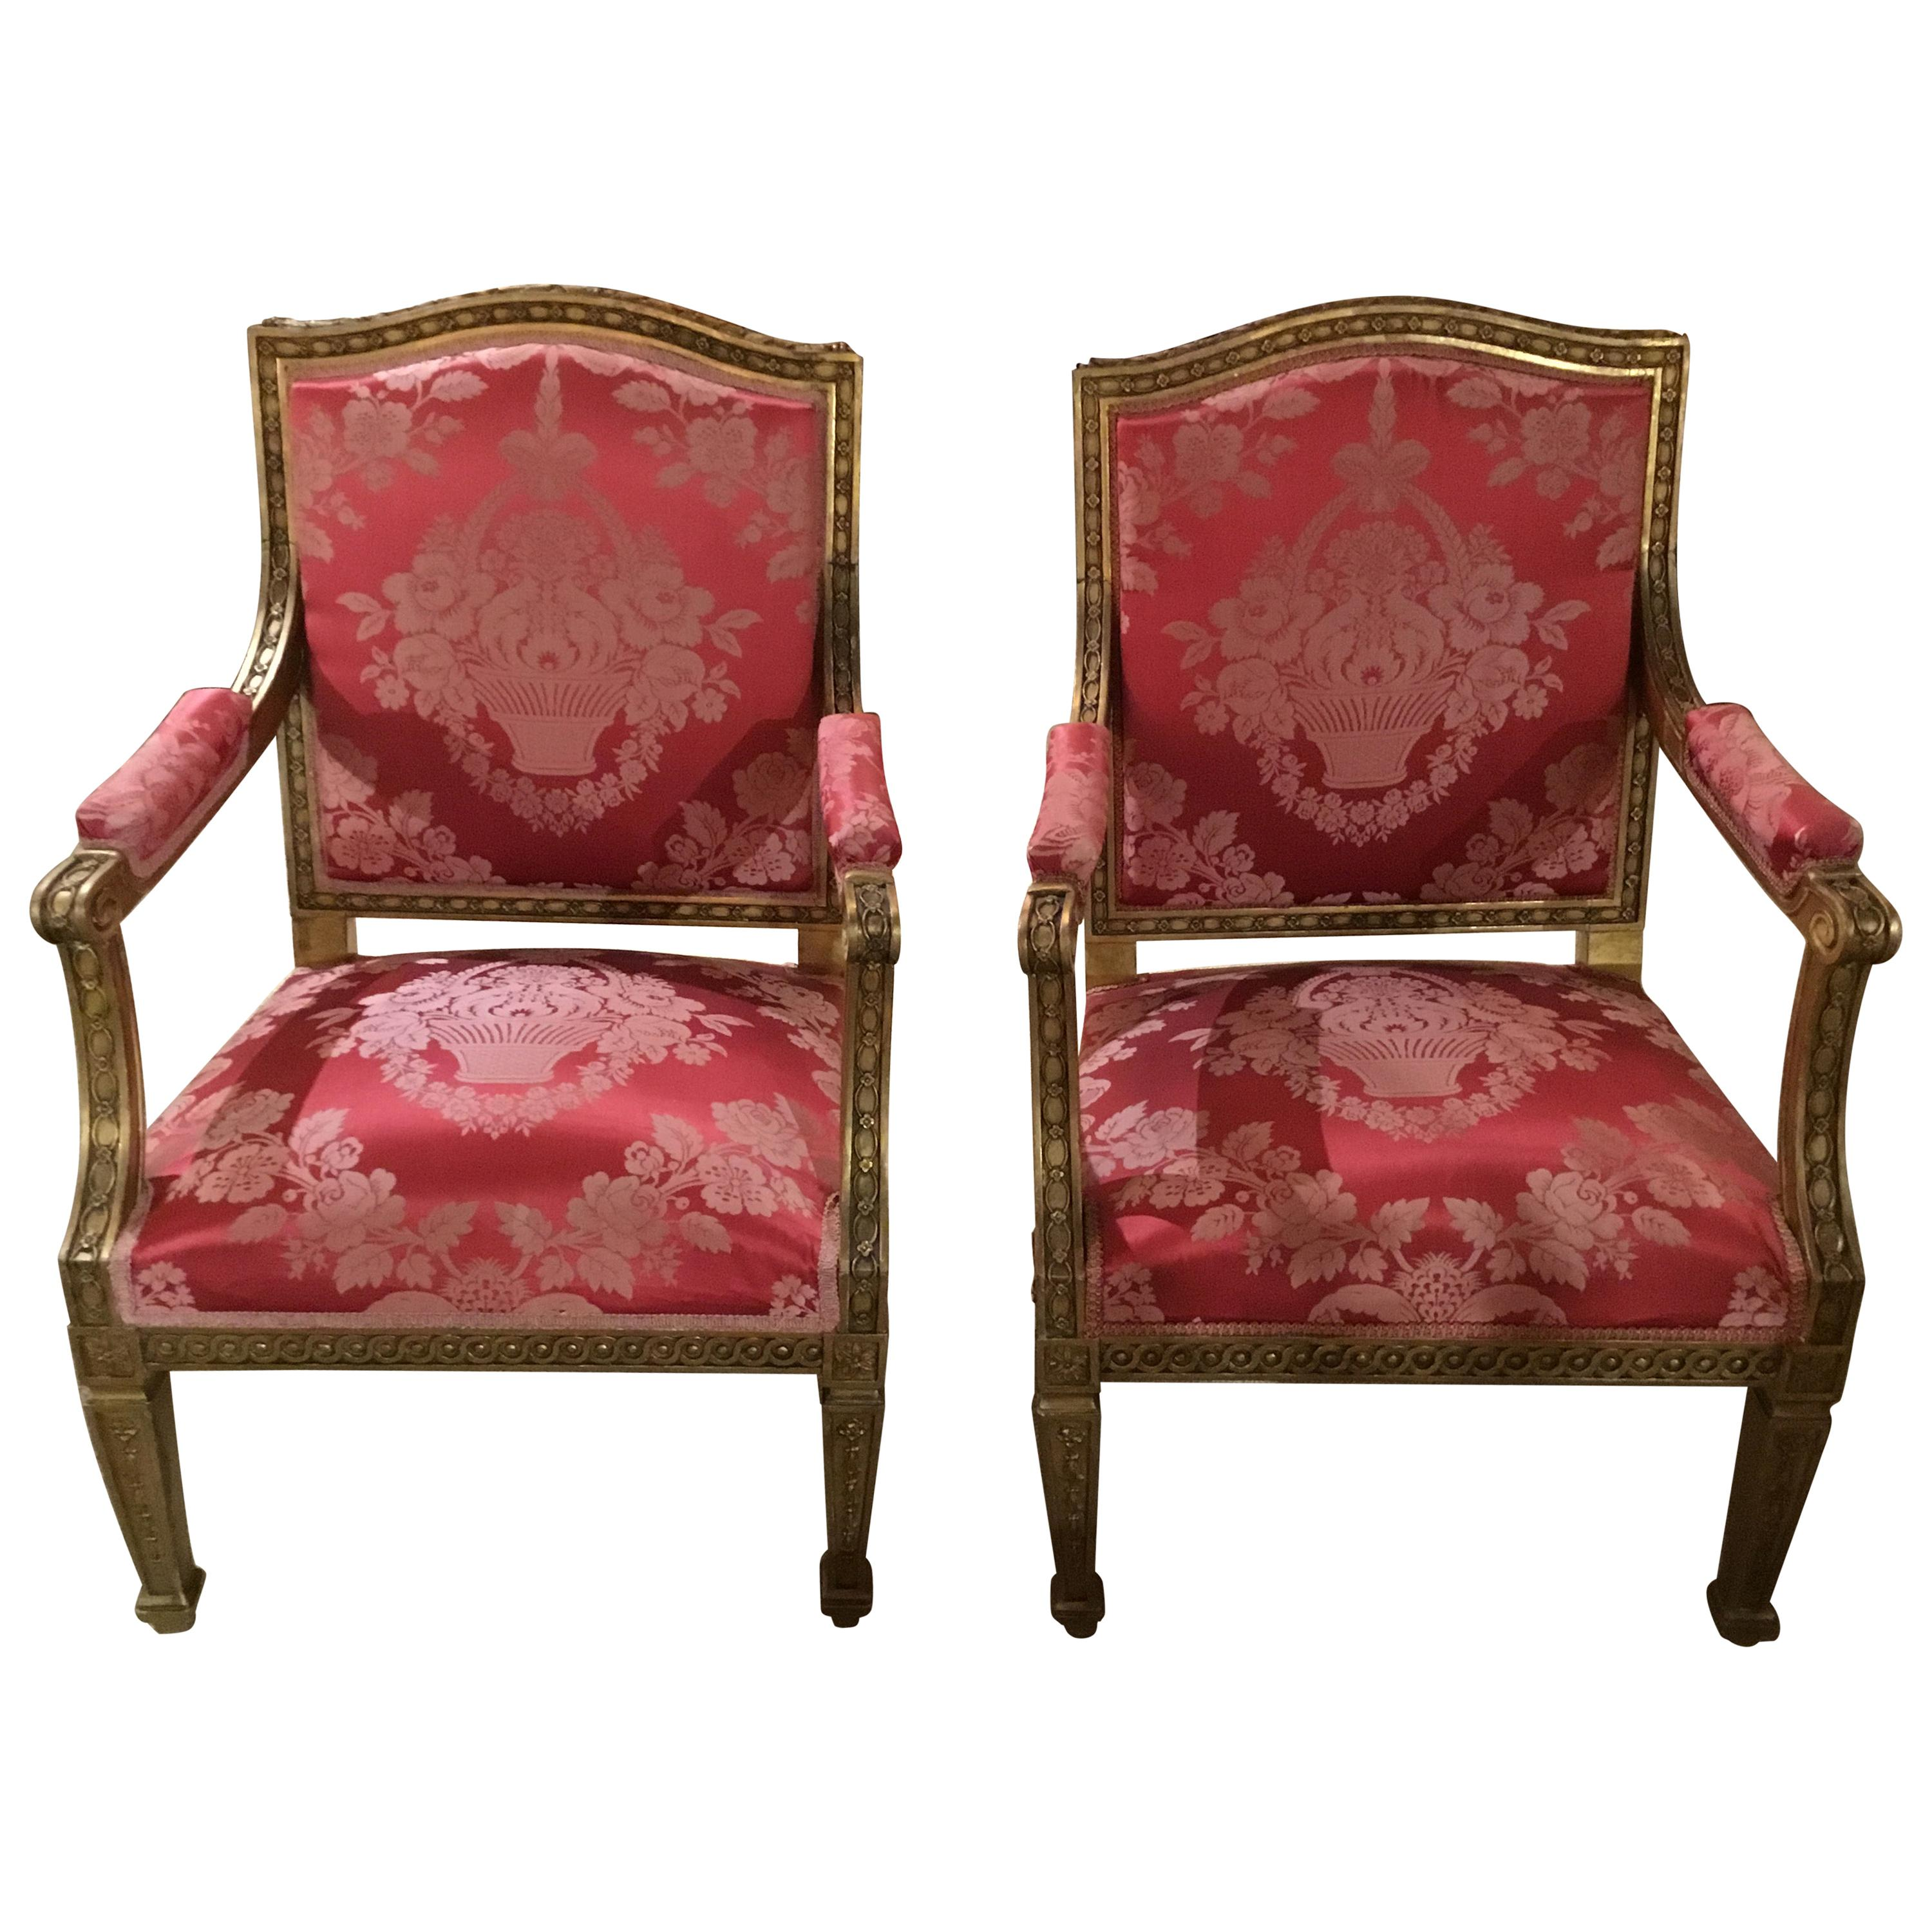 Pair of Louis XVI Style Armchairs/Fauteuils, 19th Century